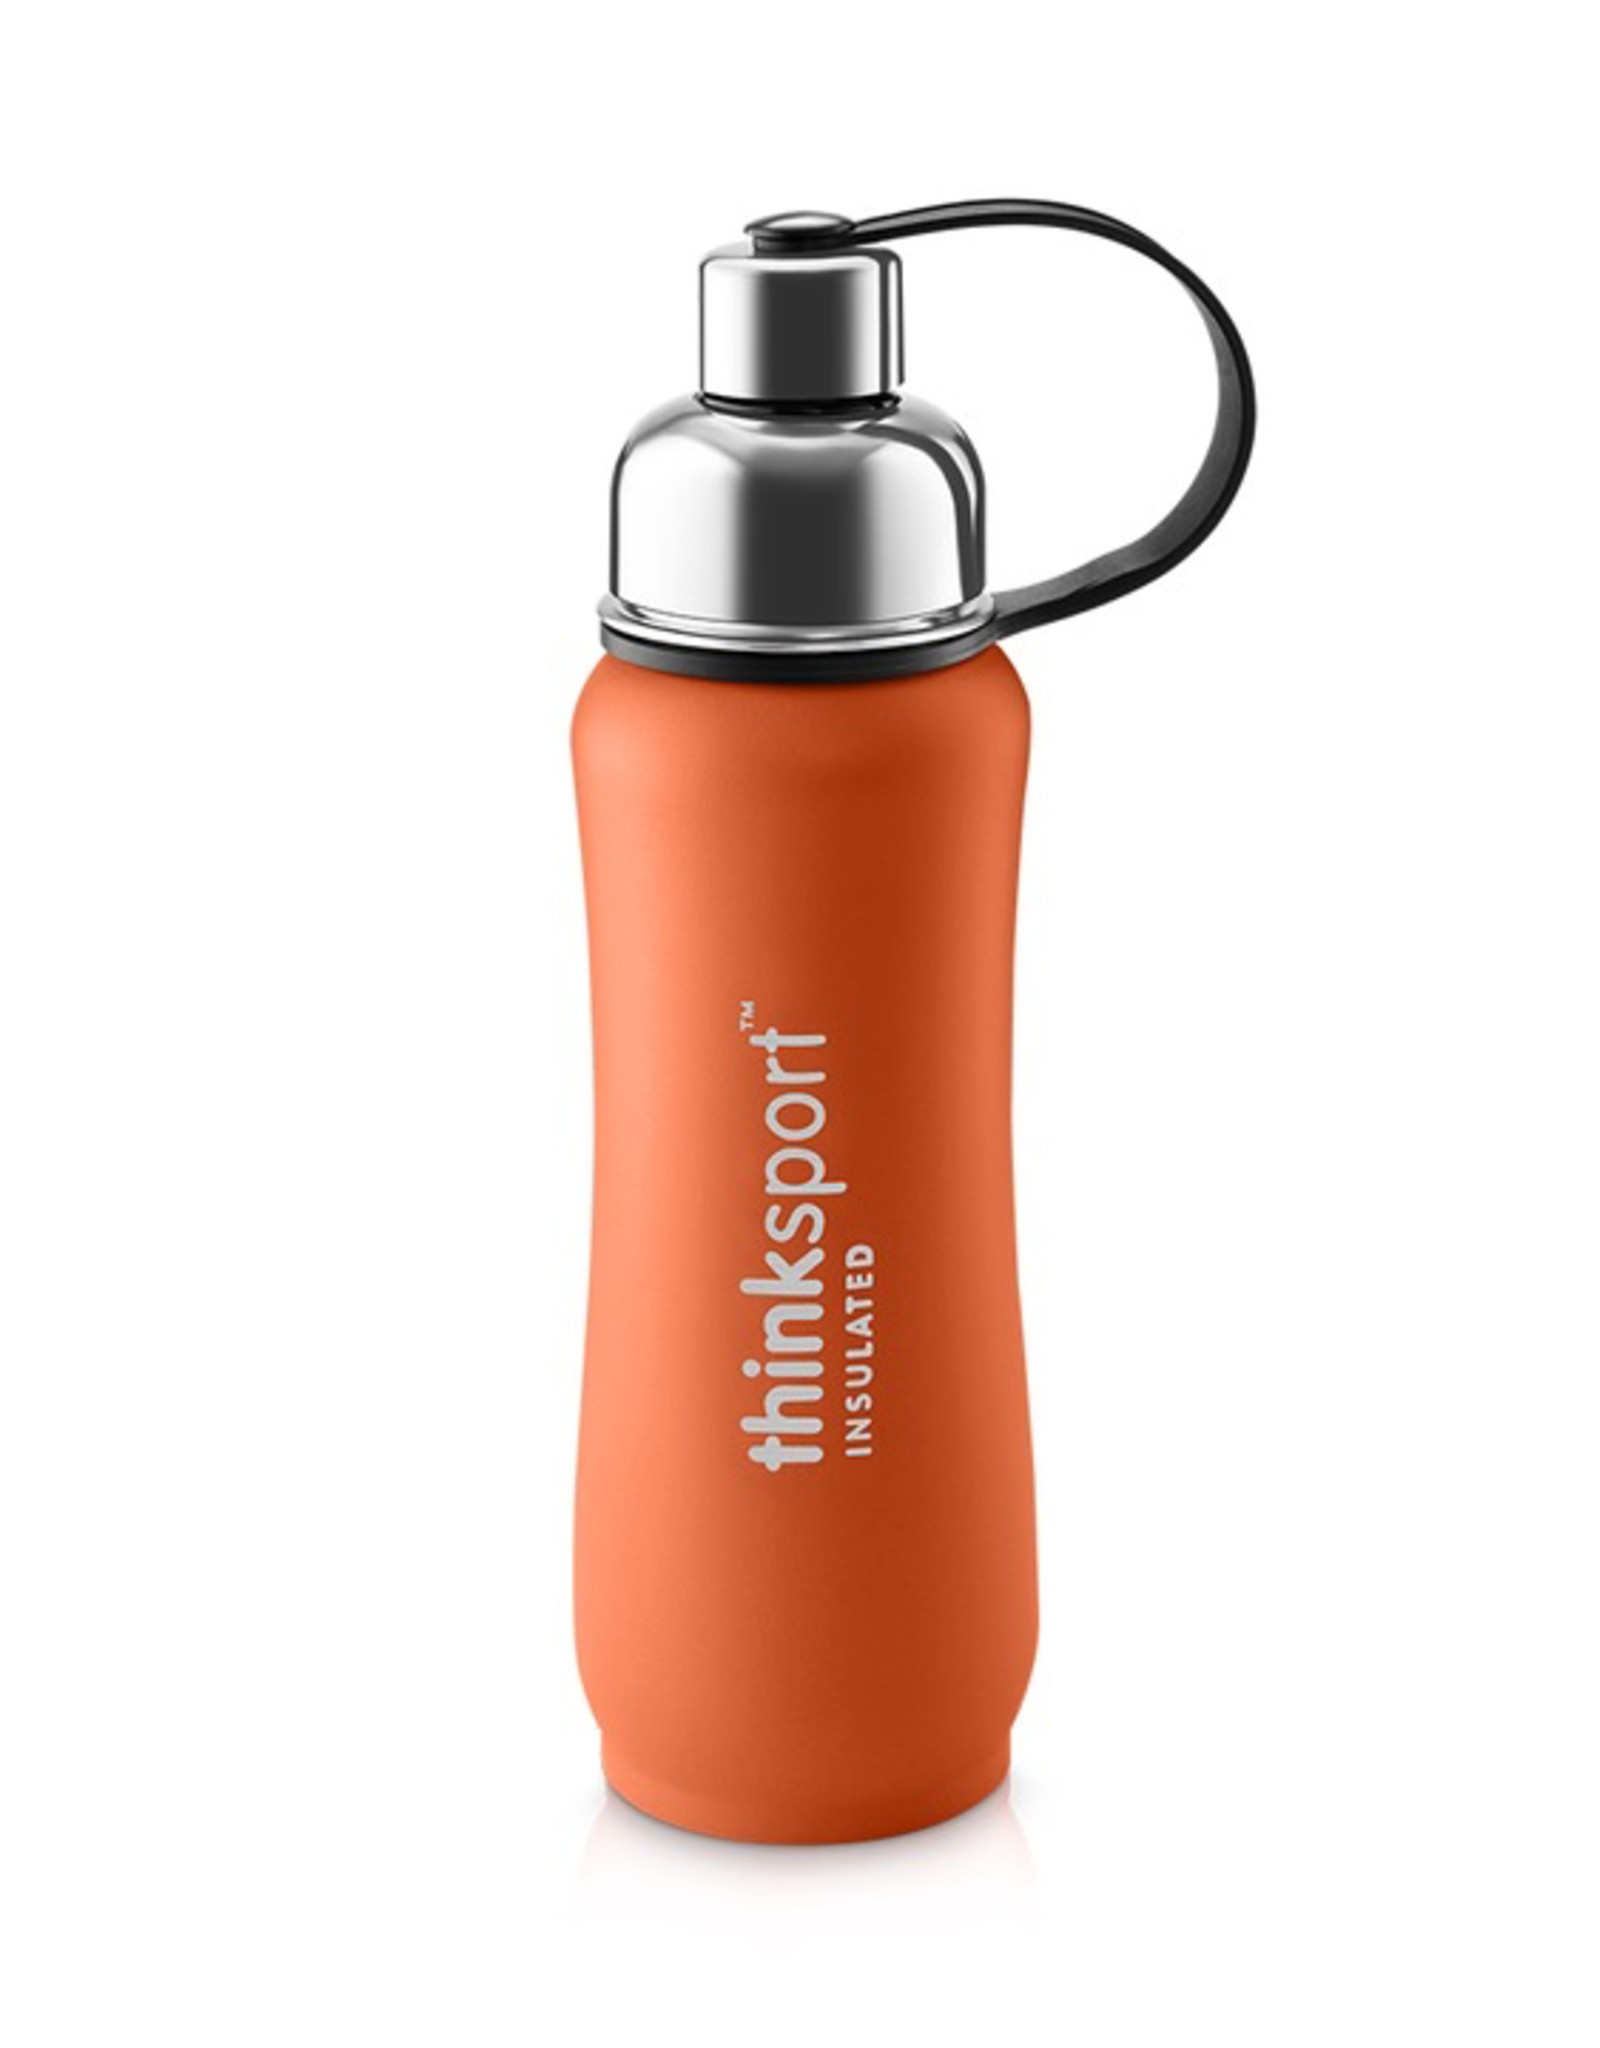 Thinksport Insulated Stainless Sports Bottle